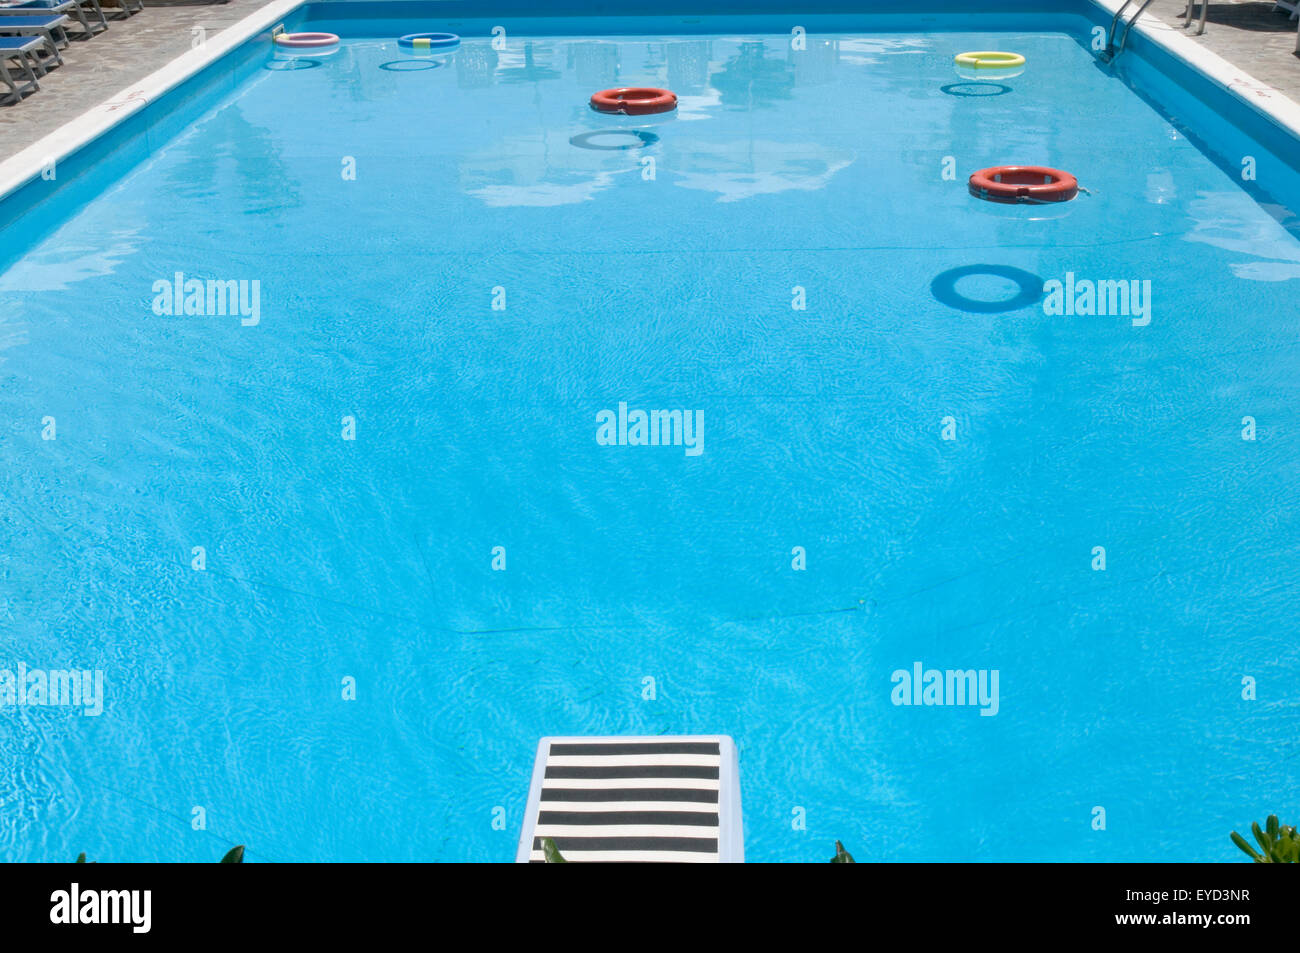 pool pools cleaning clean cleaner swimming clear blue water ...